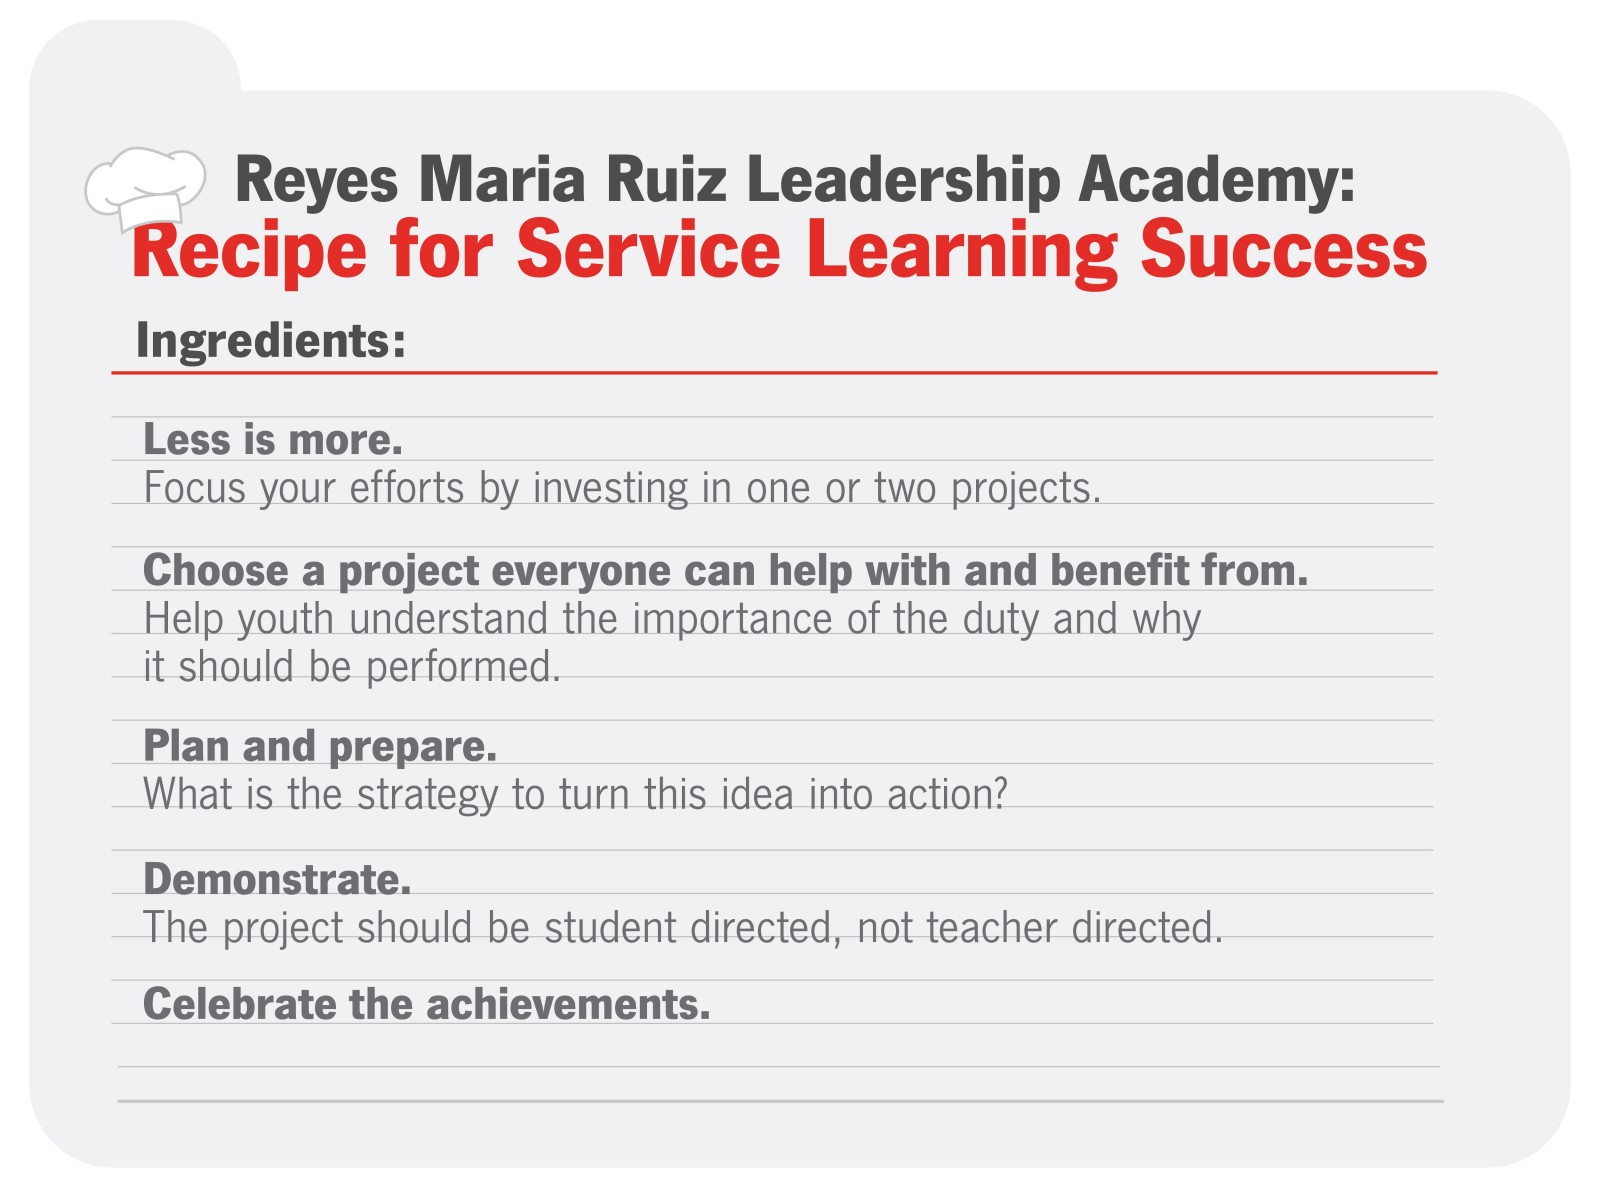 The school's recipe for leadership success.